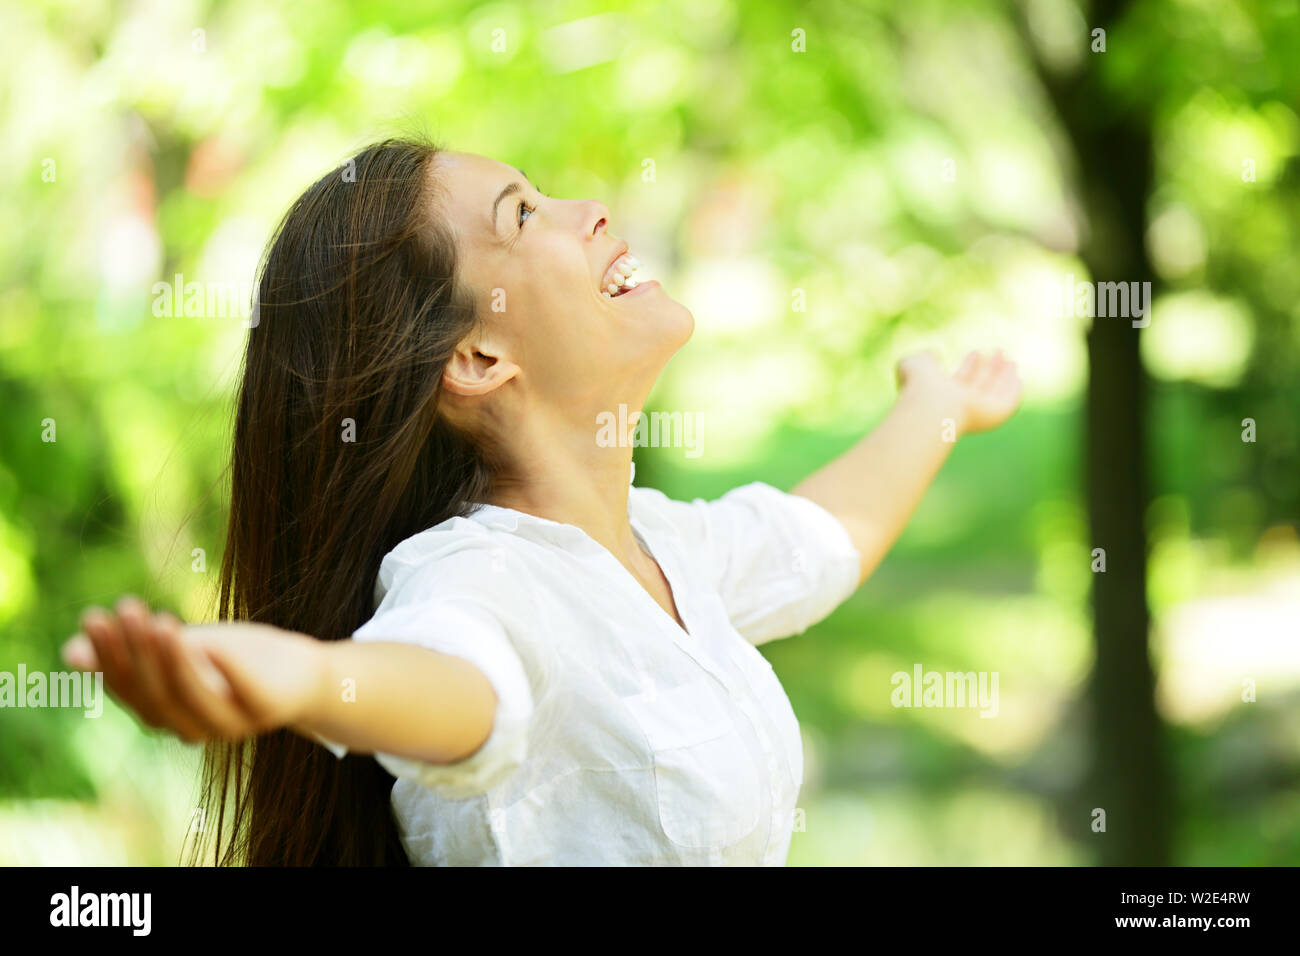 Attractive young woman rejoicing in a spring or summer garden standing sideways with her arms outstretched and her head raised to the heavens enjoying the freshness and beauty of nature - Stock Image